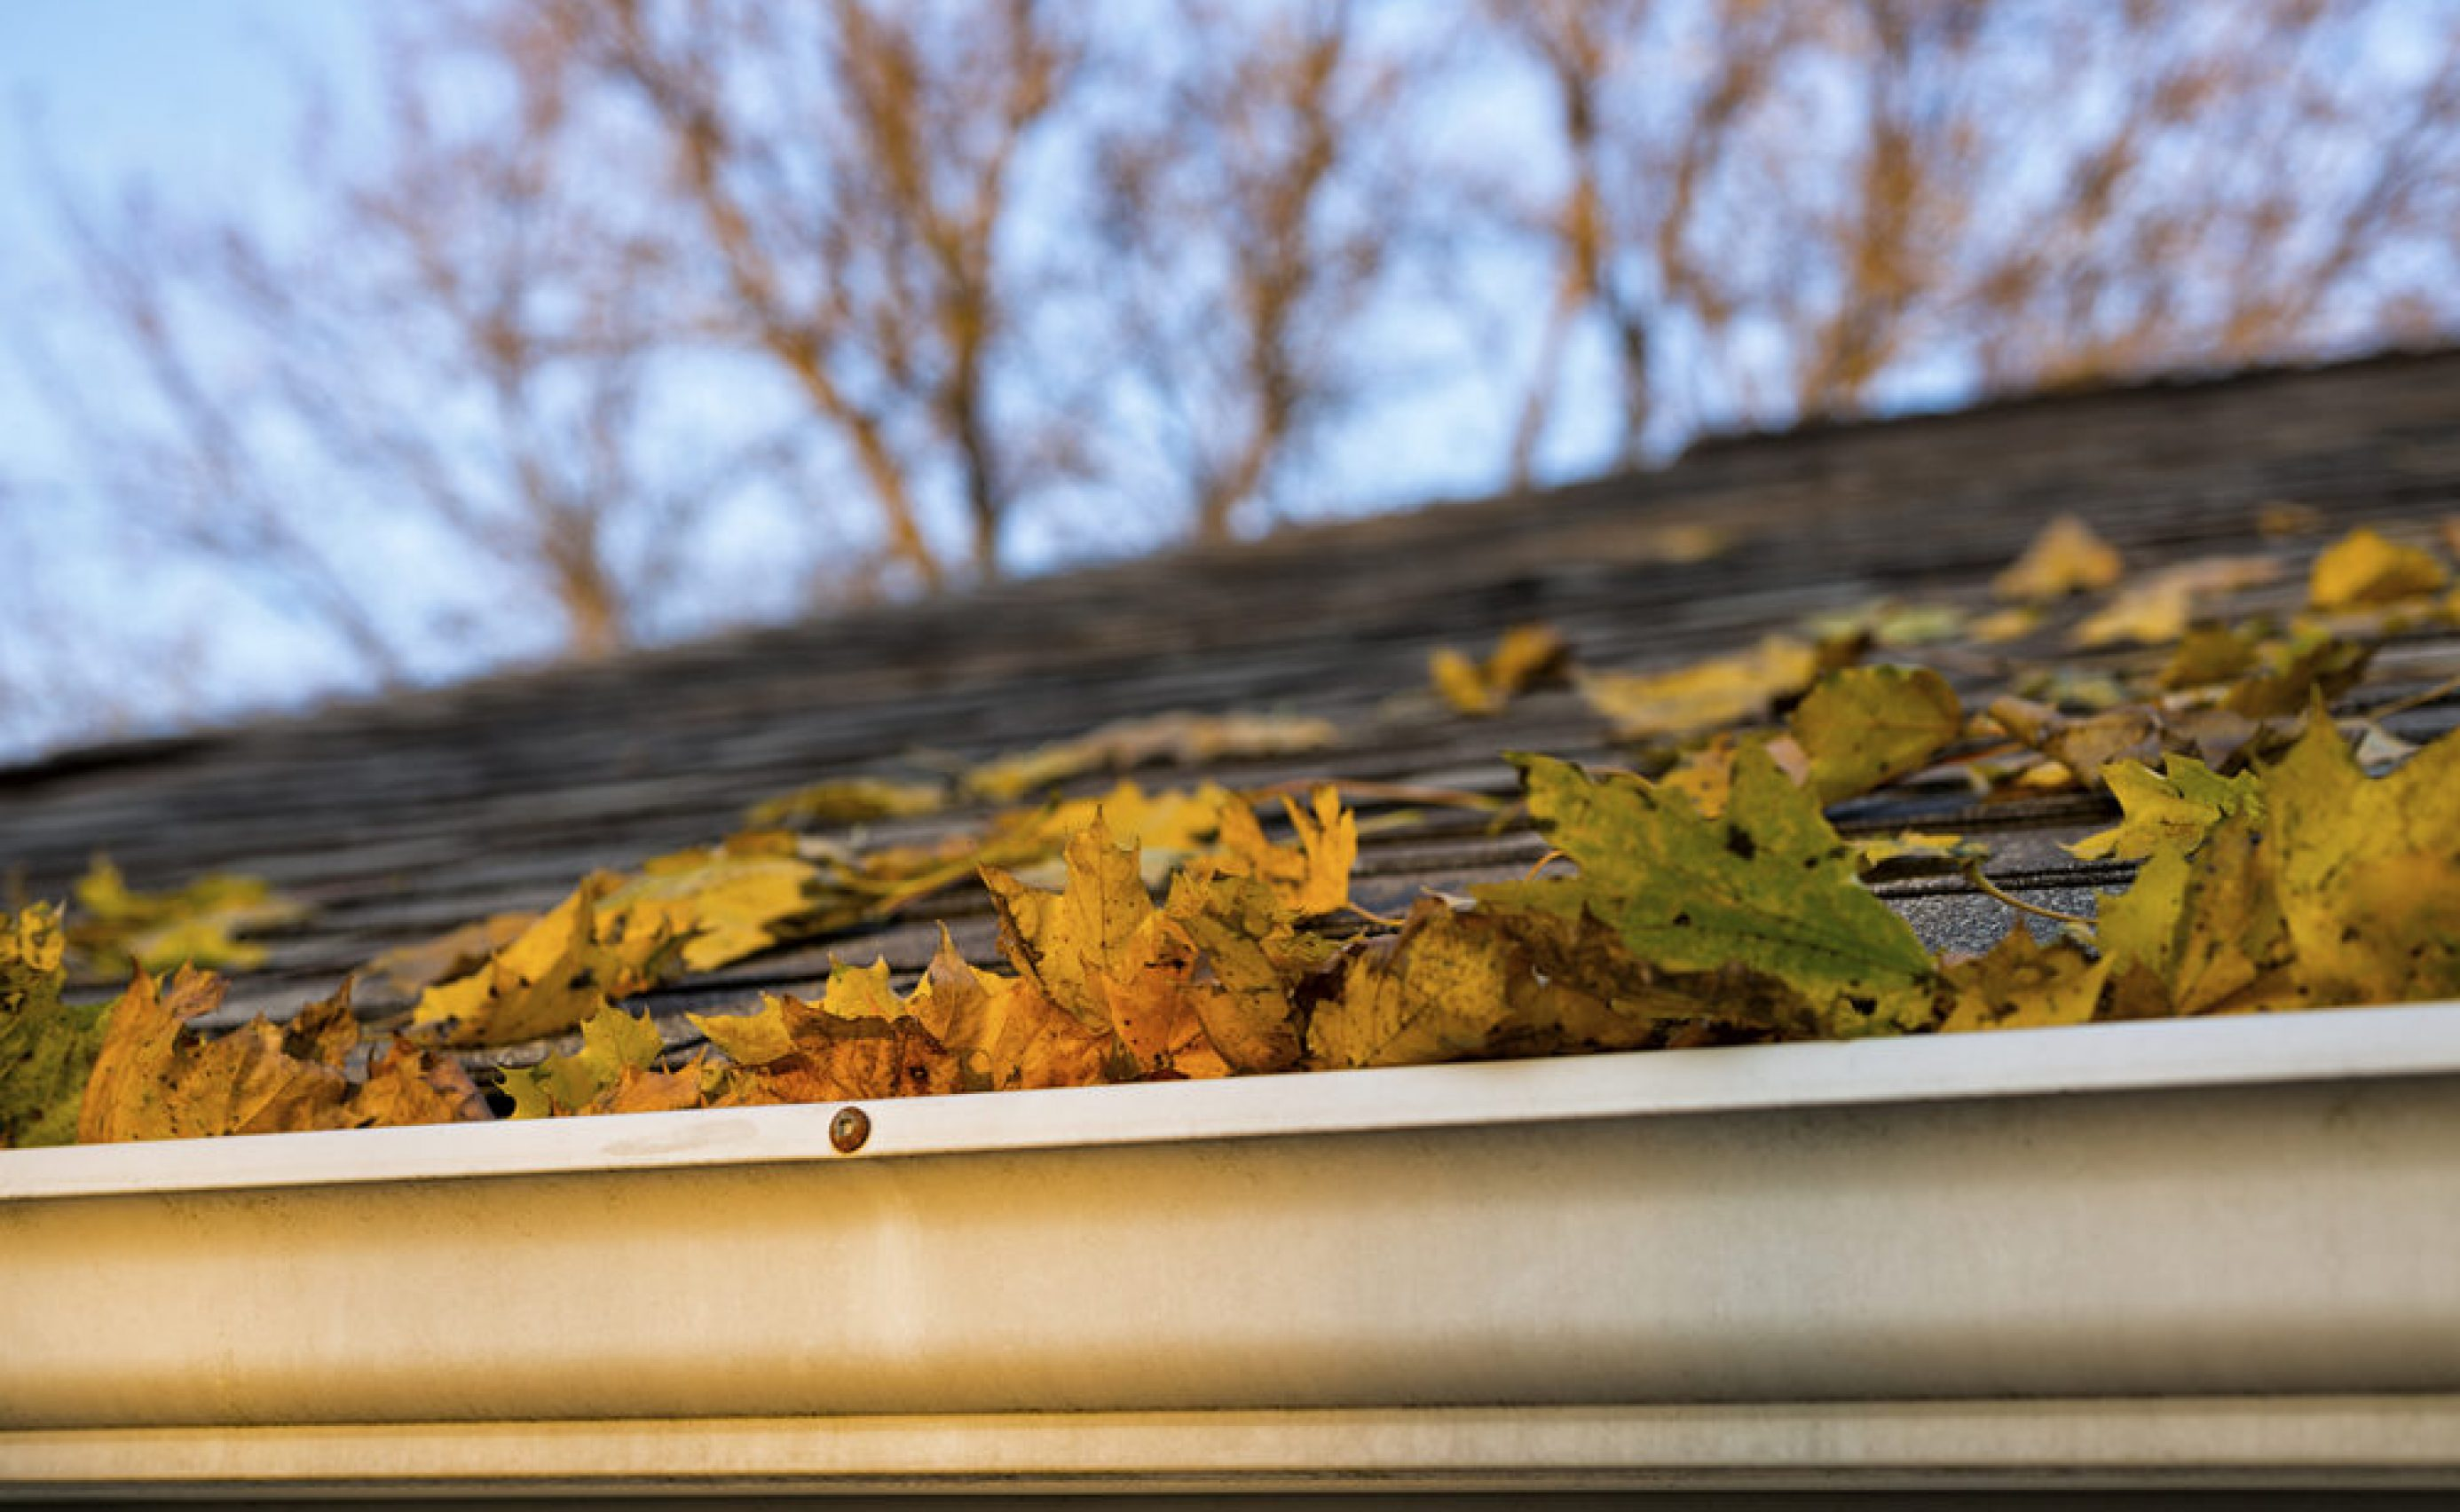 Autumn Leaves in the Gutter and on a shingled roof of a house.